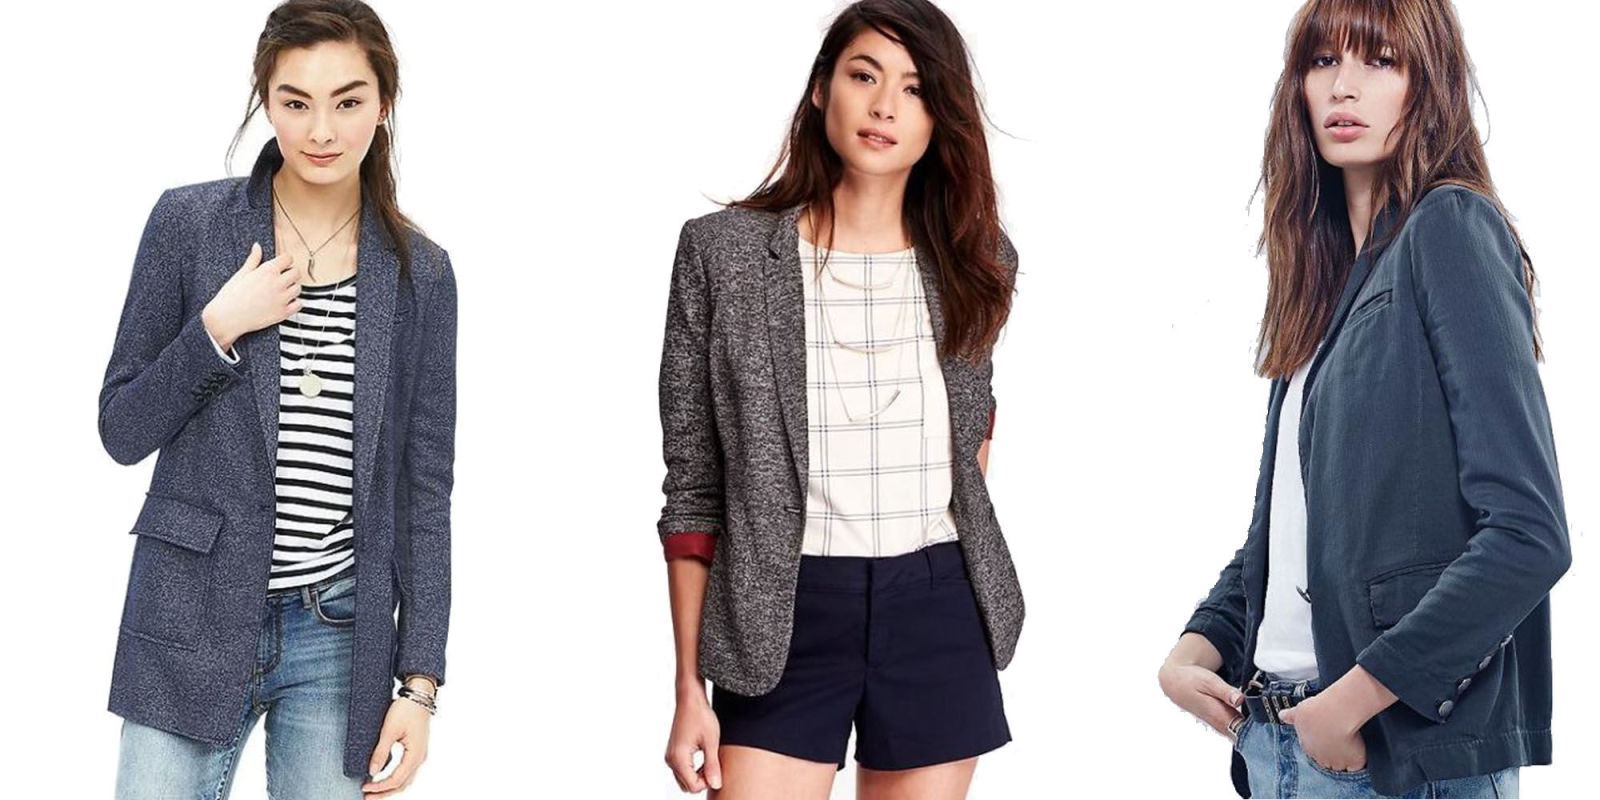 Shop boyfriend blazers in Contemporary at Neiman Marcus. Get free shipping on boyfriend blazers in a variety of colors and patterns.